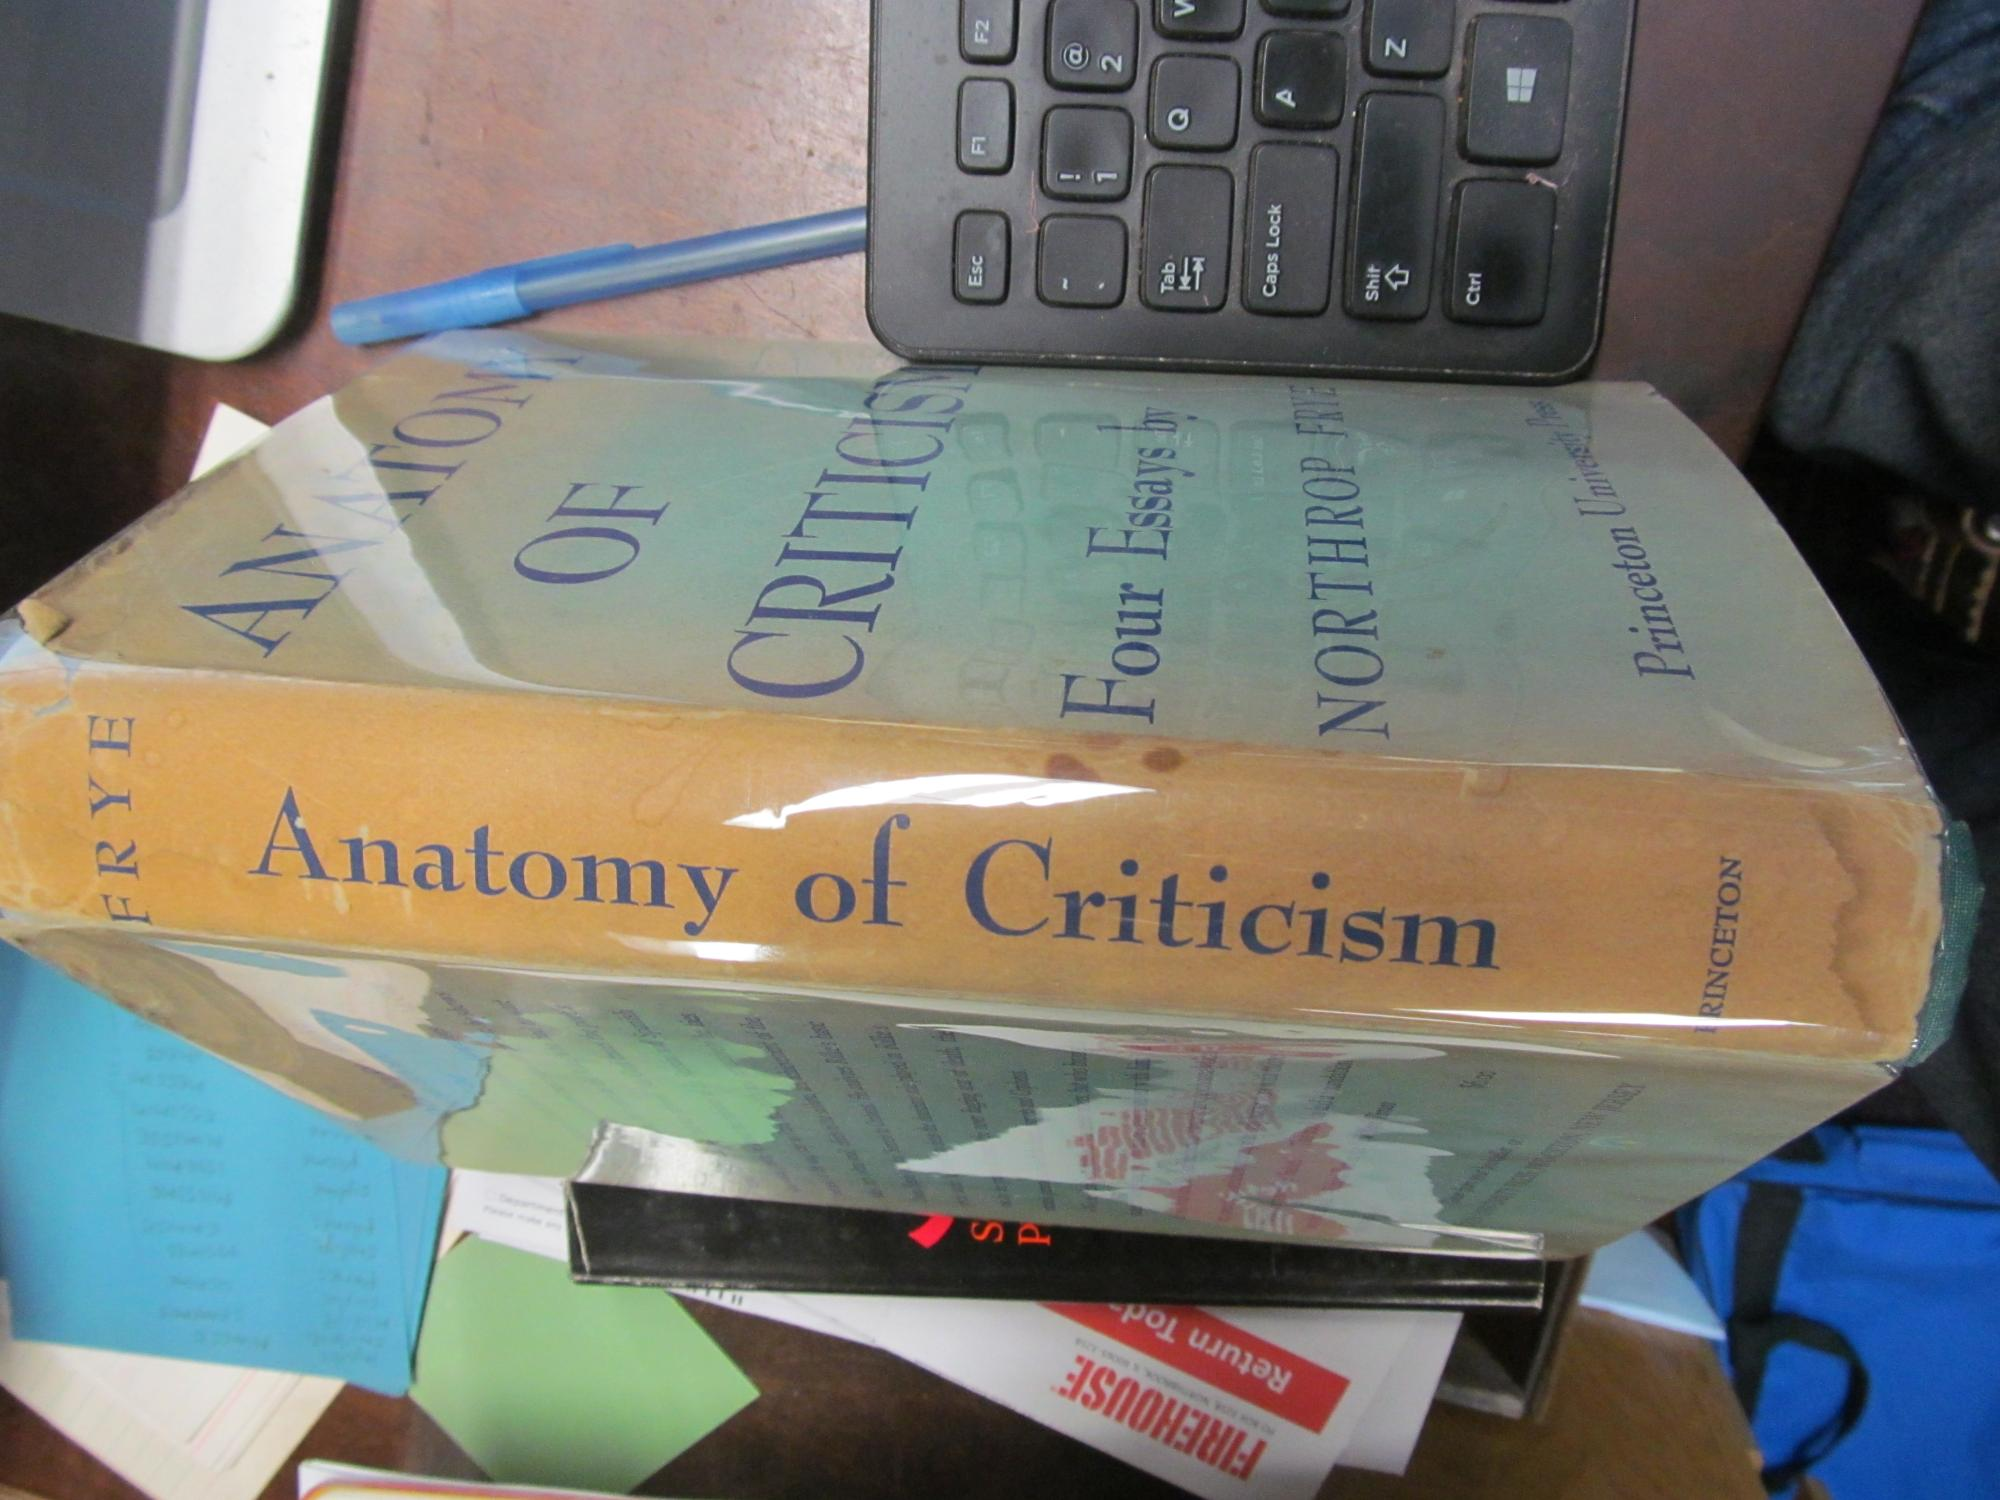 Anatomy Criticism by Northrop Frye - AbeBooks